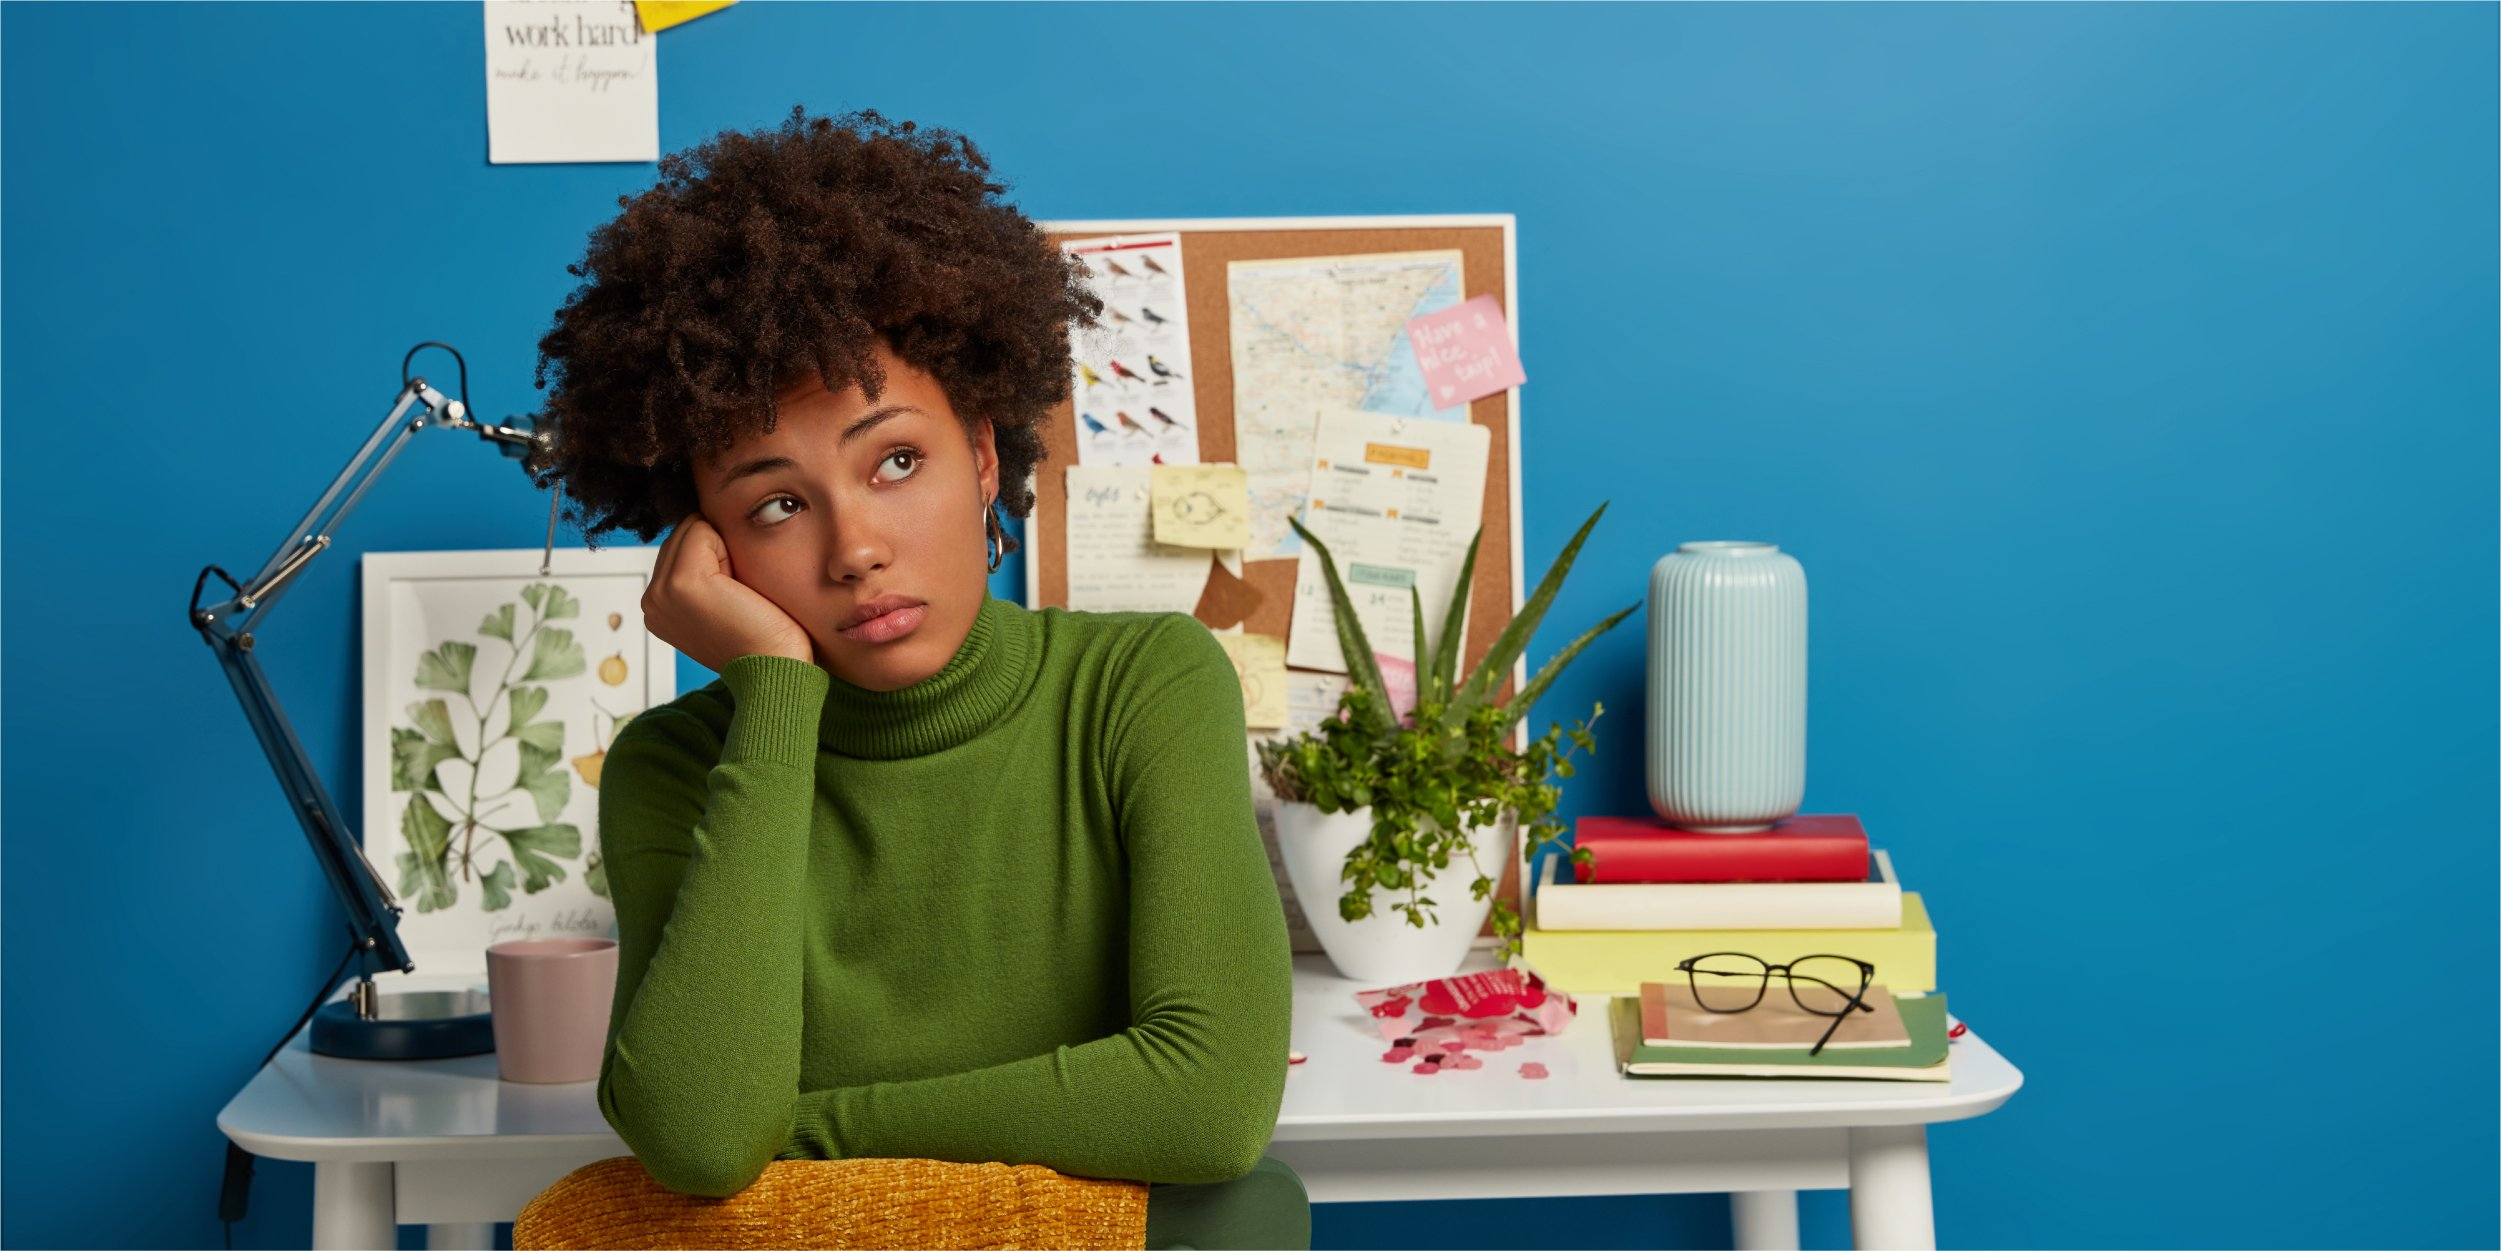 pensive-dark-skinned-lady-looks-away-dressed-green-turtleneck-has-rest-after-working-desktop-poses-home-against-blue-background_The Most Important Metric for Firm Growth Is Revenue Per Client—Here's Why_Botkeeper